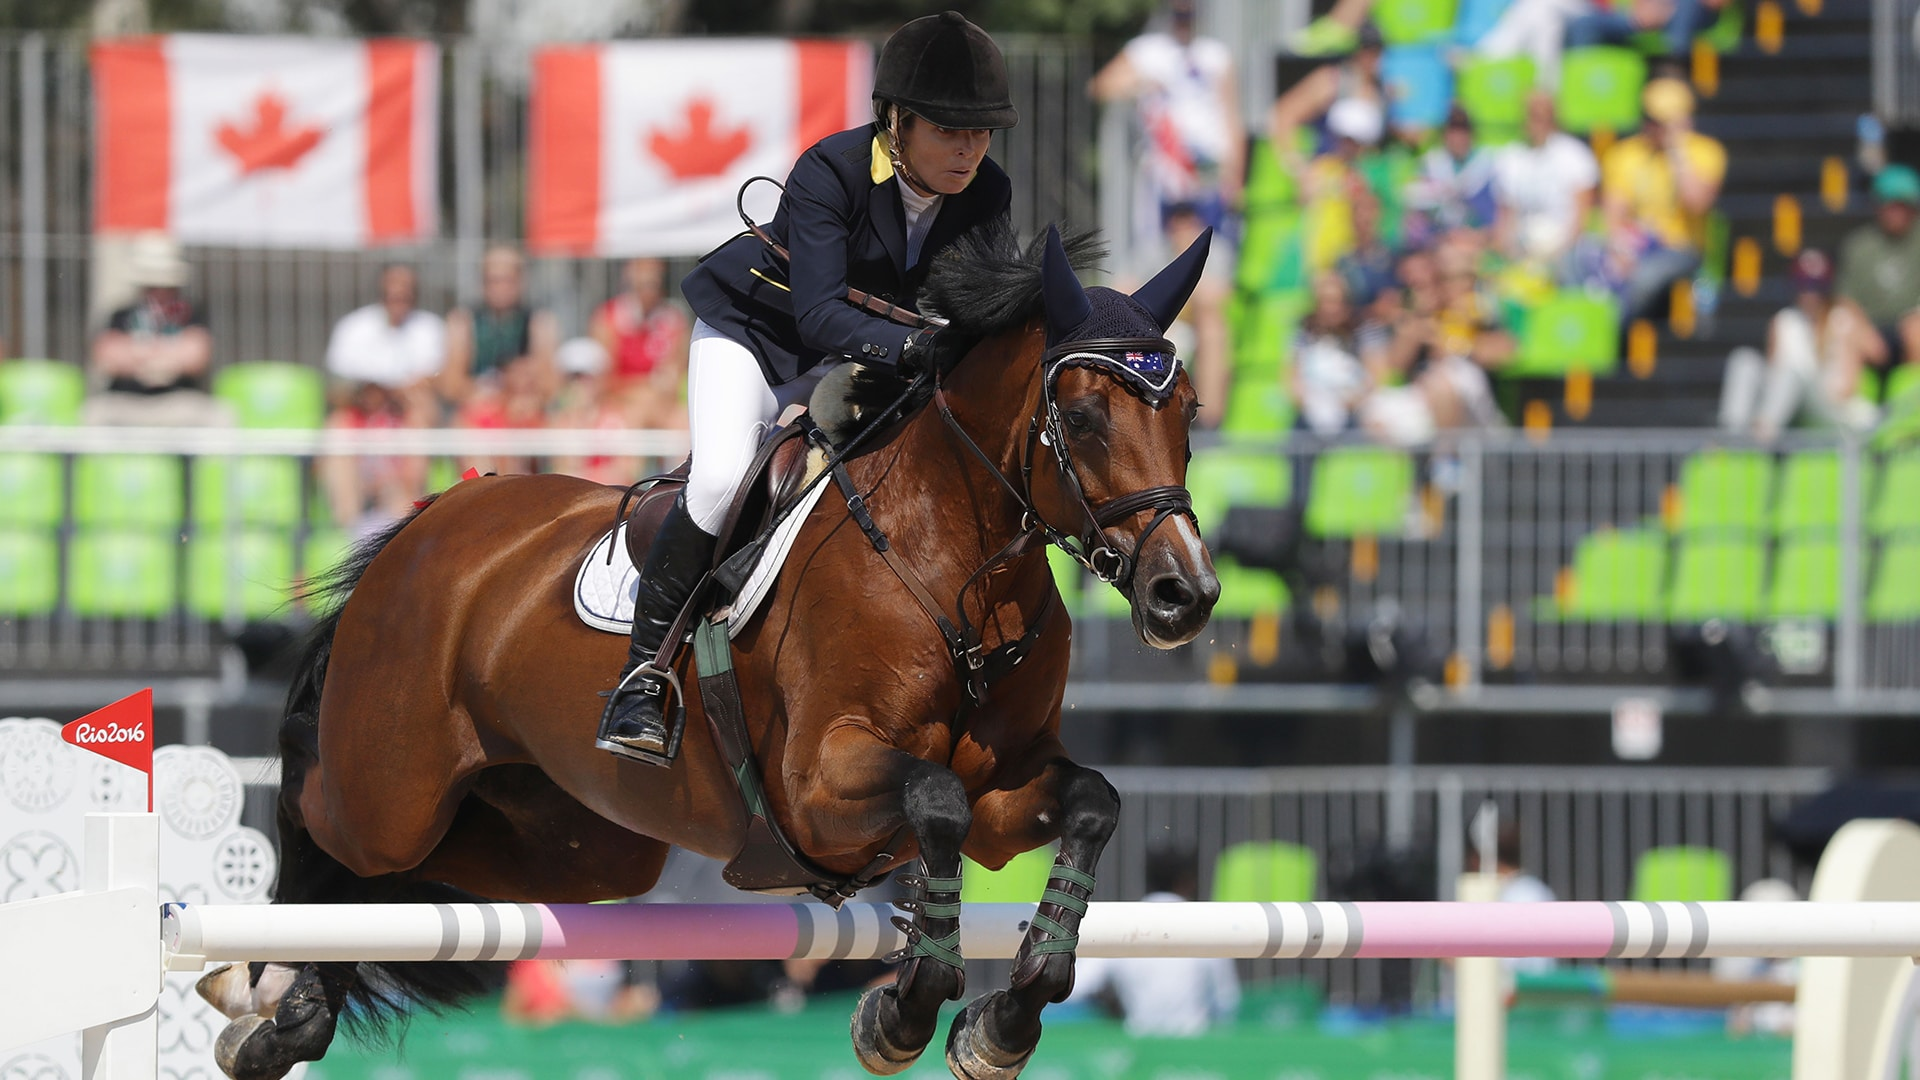 Image for Australia showjumpers can compete after teammate's cocaine scandal